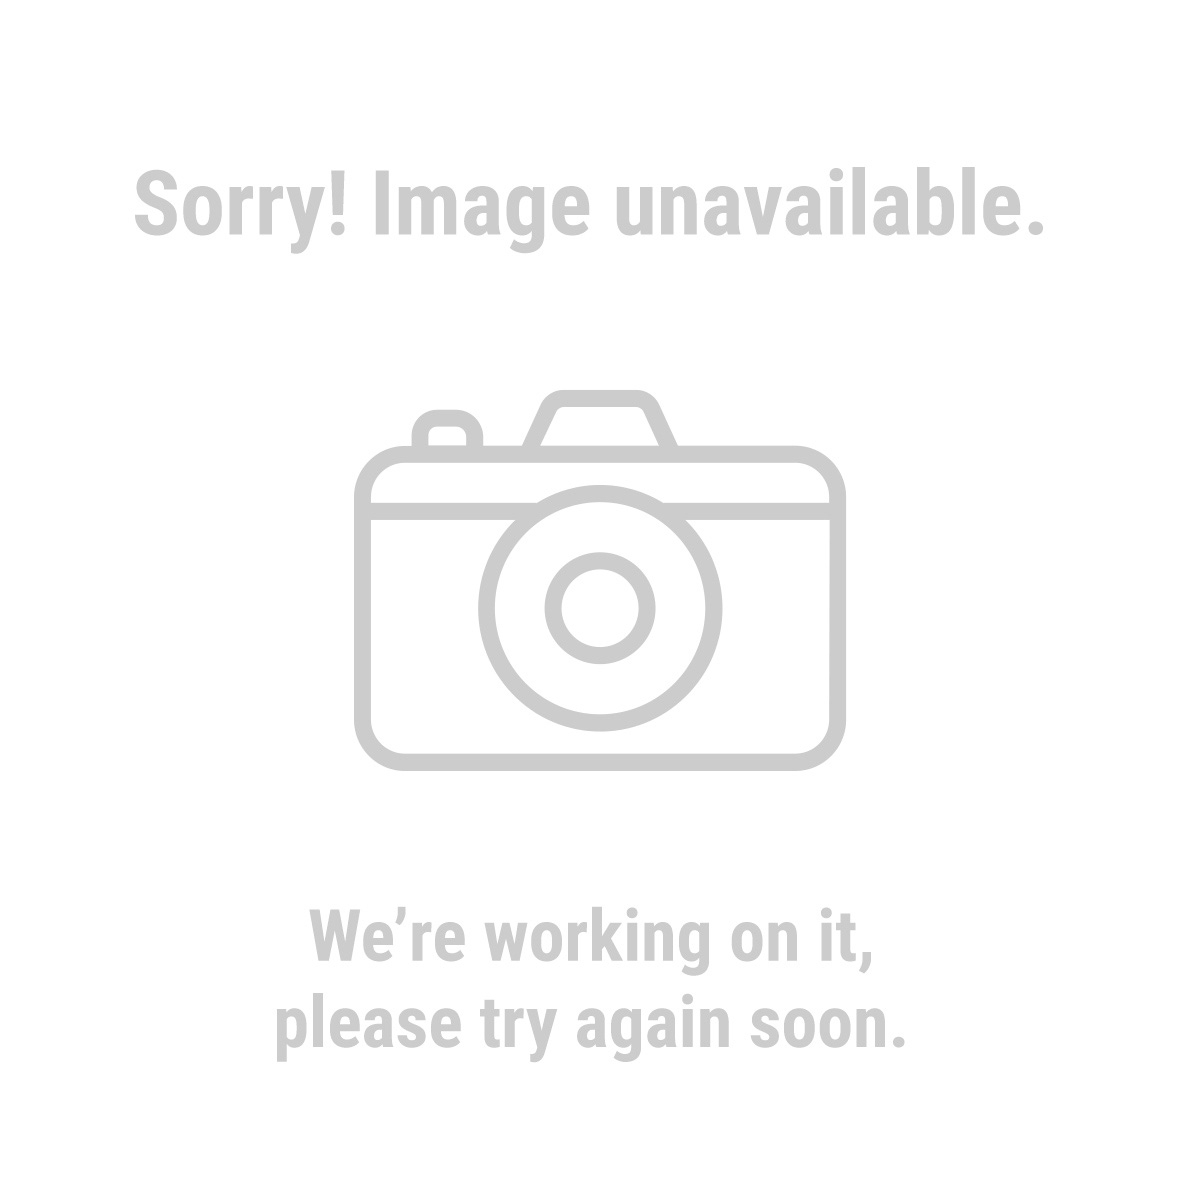 Western Safety 66292 5 Pair Leather Palm Patch Gloves